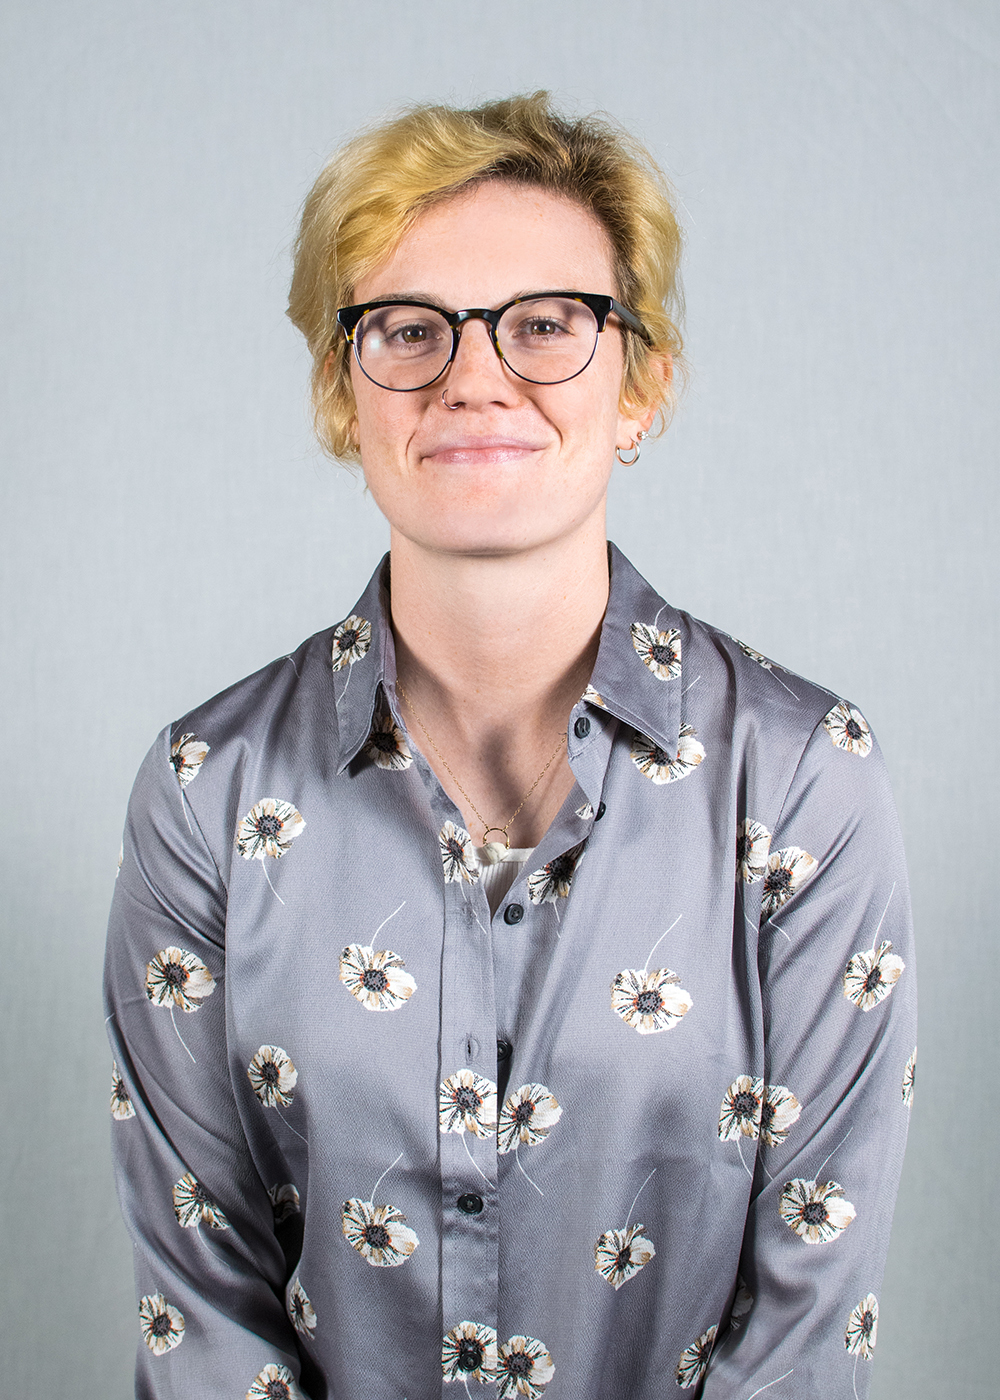 Smiling person with short blonde hair and glasses poses in a floral print shirt